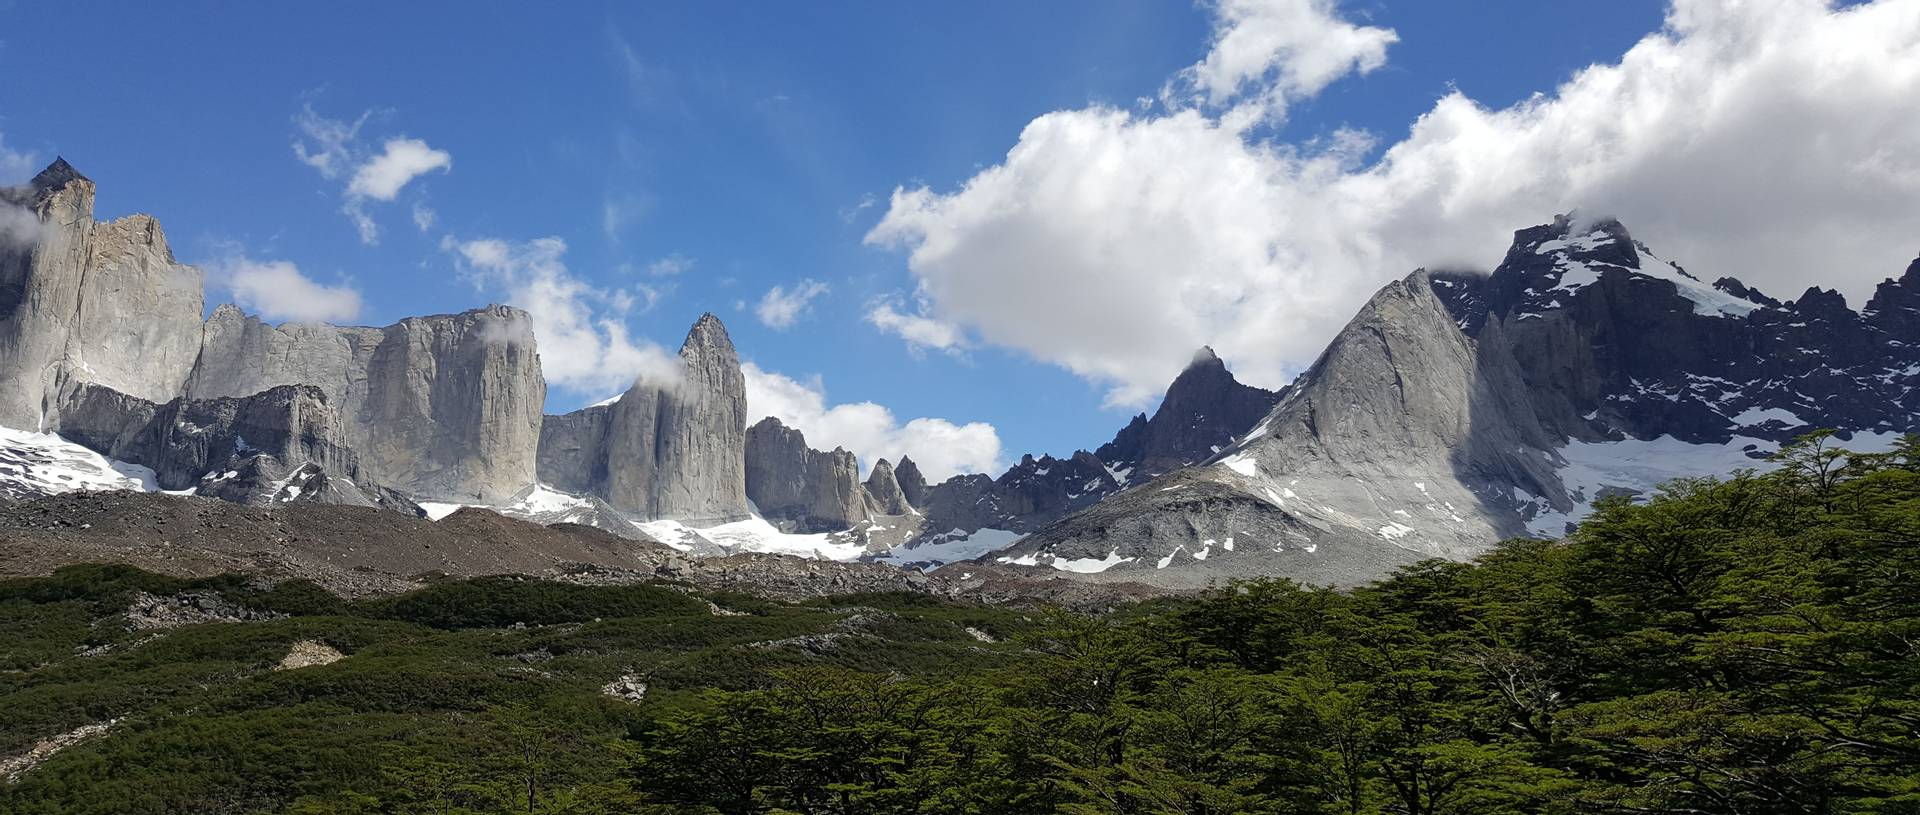 Torres Del Paine National Park. Chile